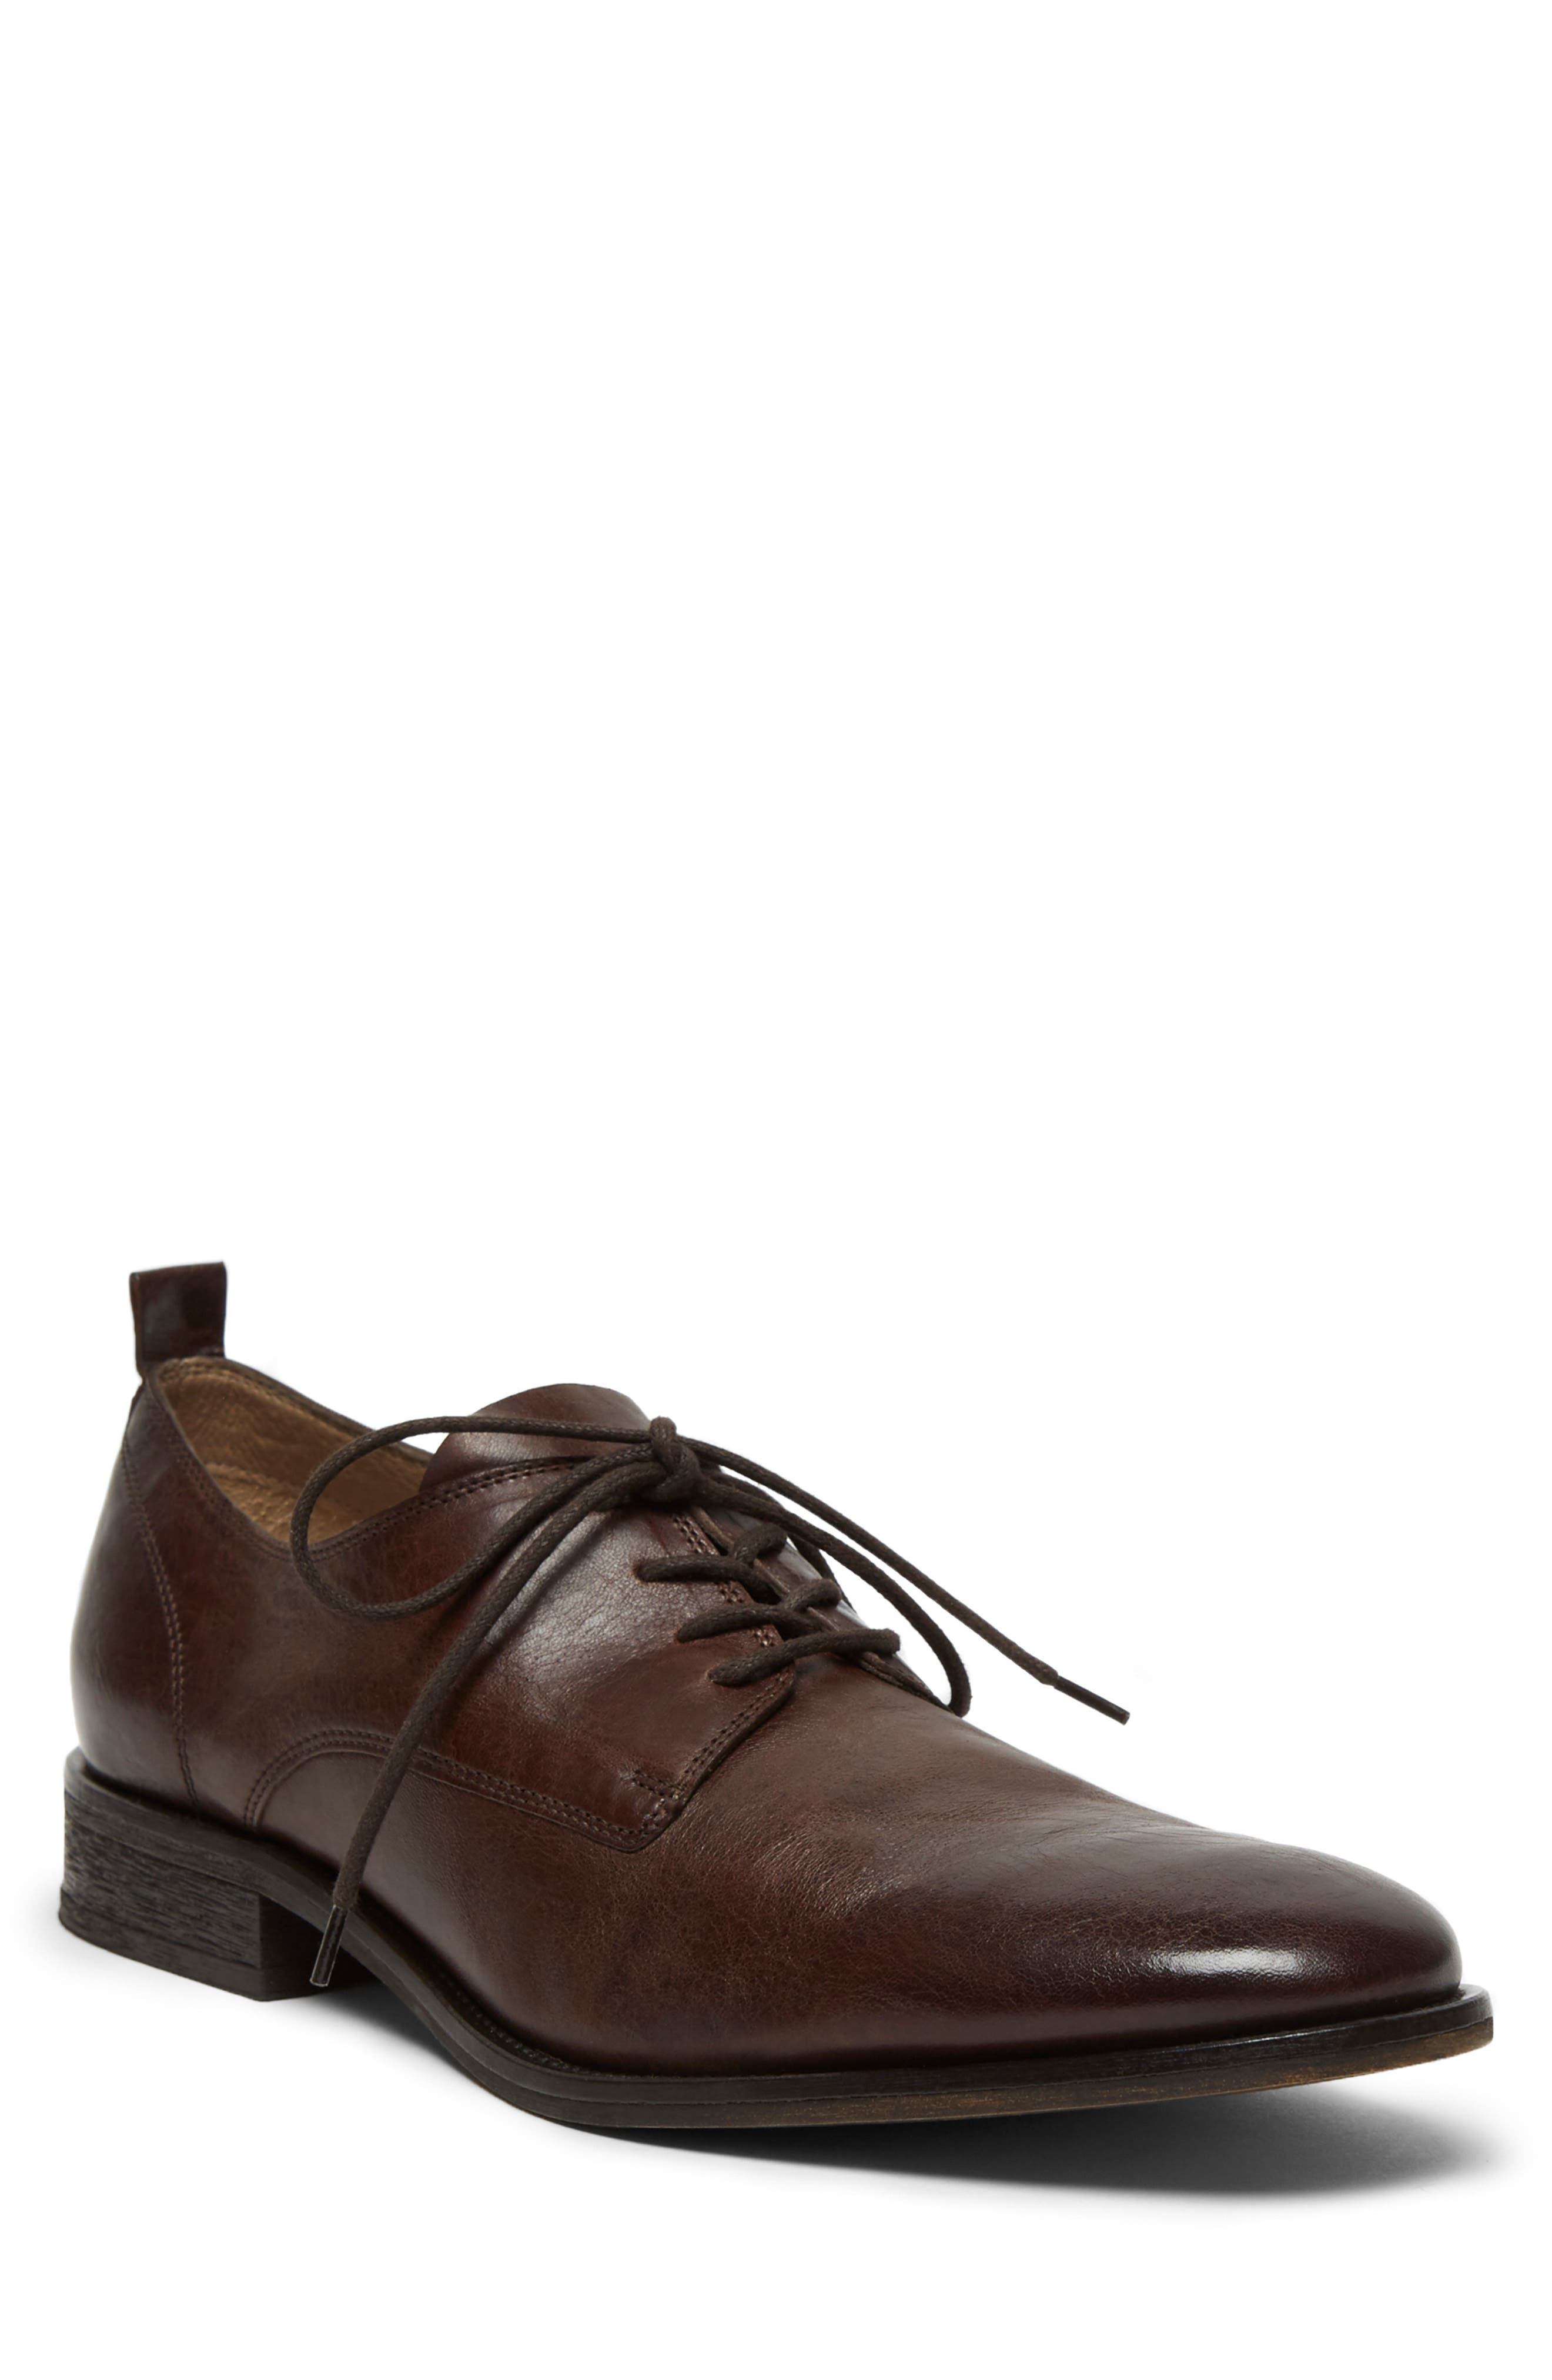 KENNETH COLE NEW YORK Indio Plain Toe Derby, Main, color, BROWN LEATHER